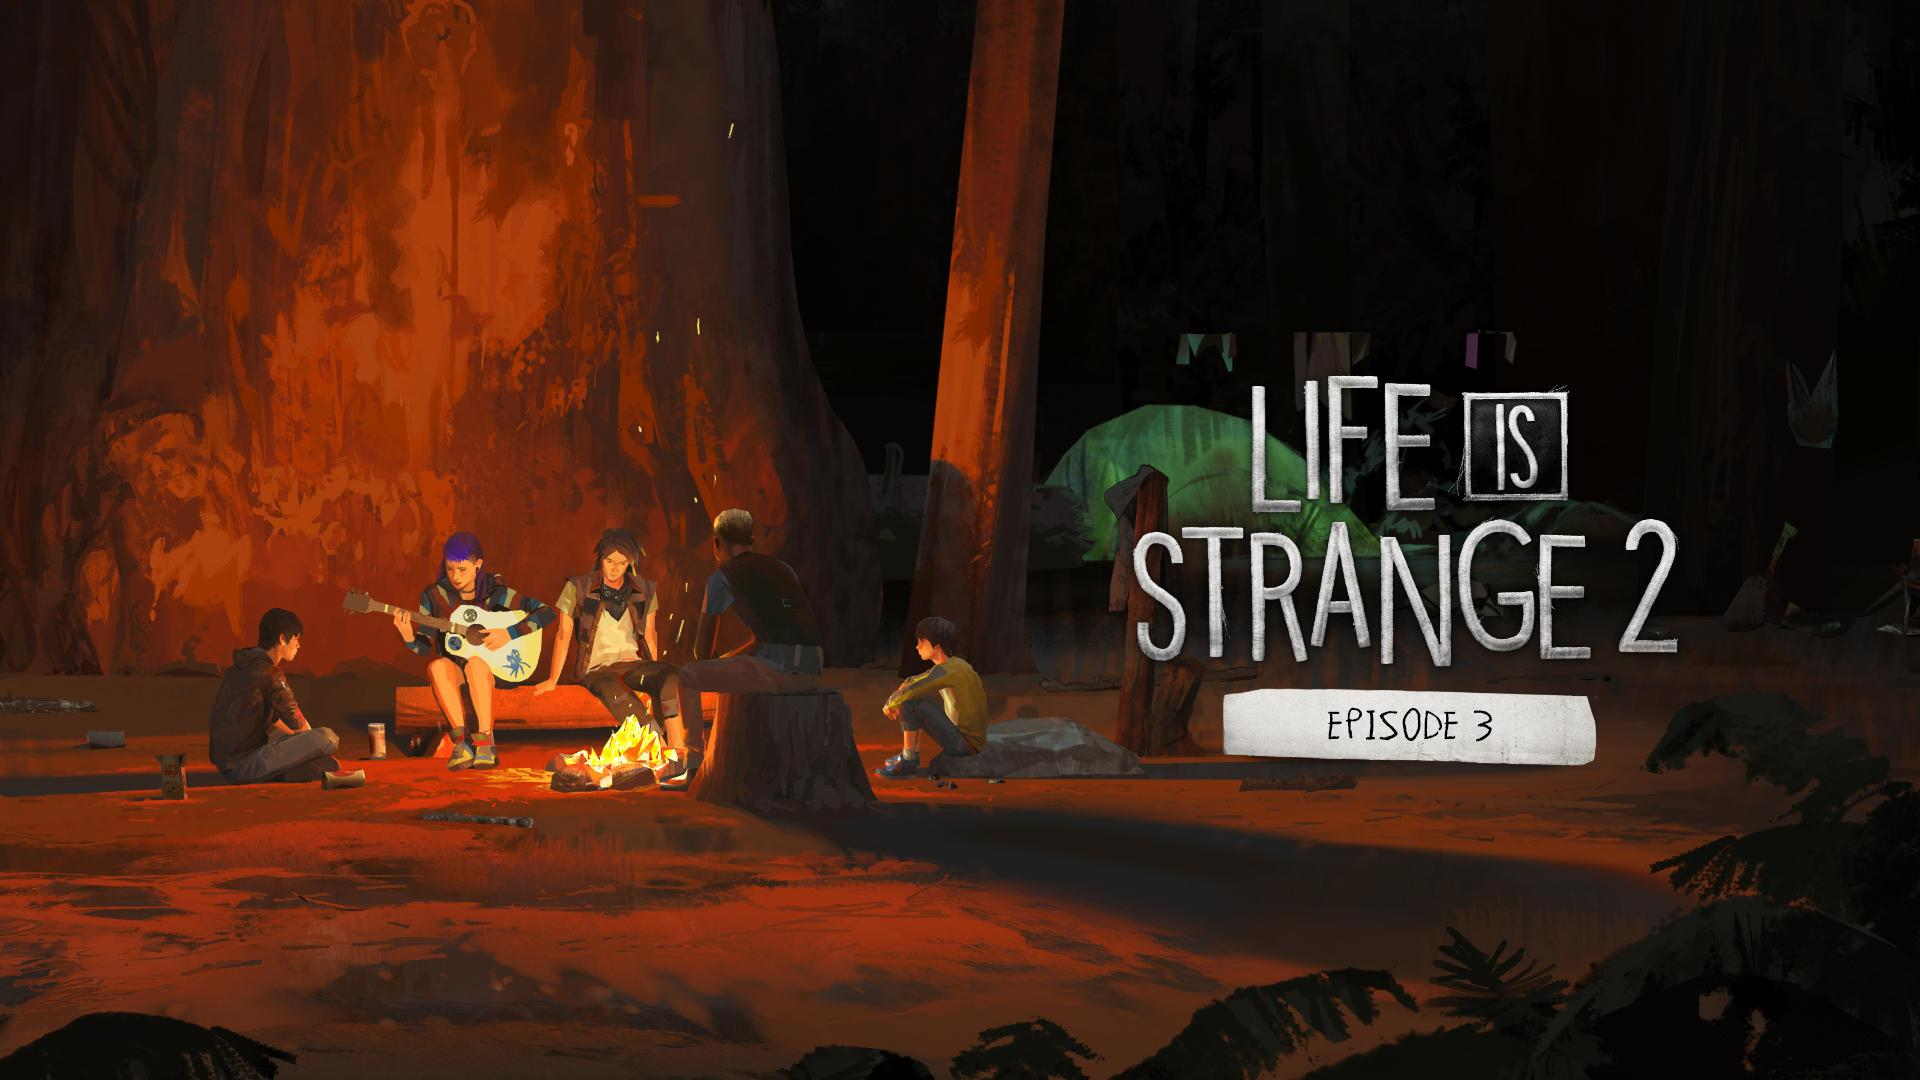 Life is Strange 2 Episode 4